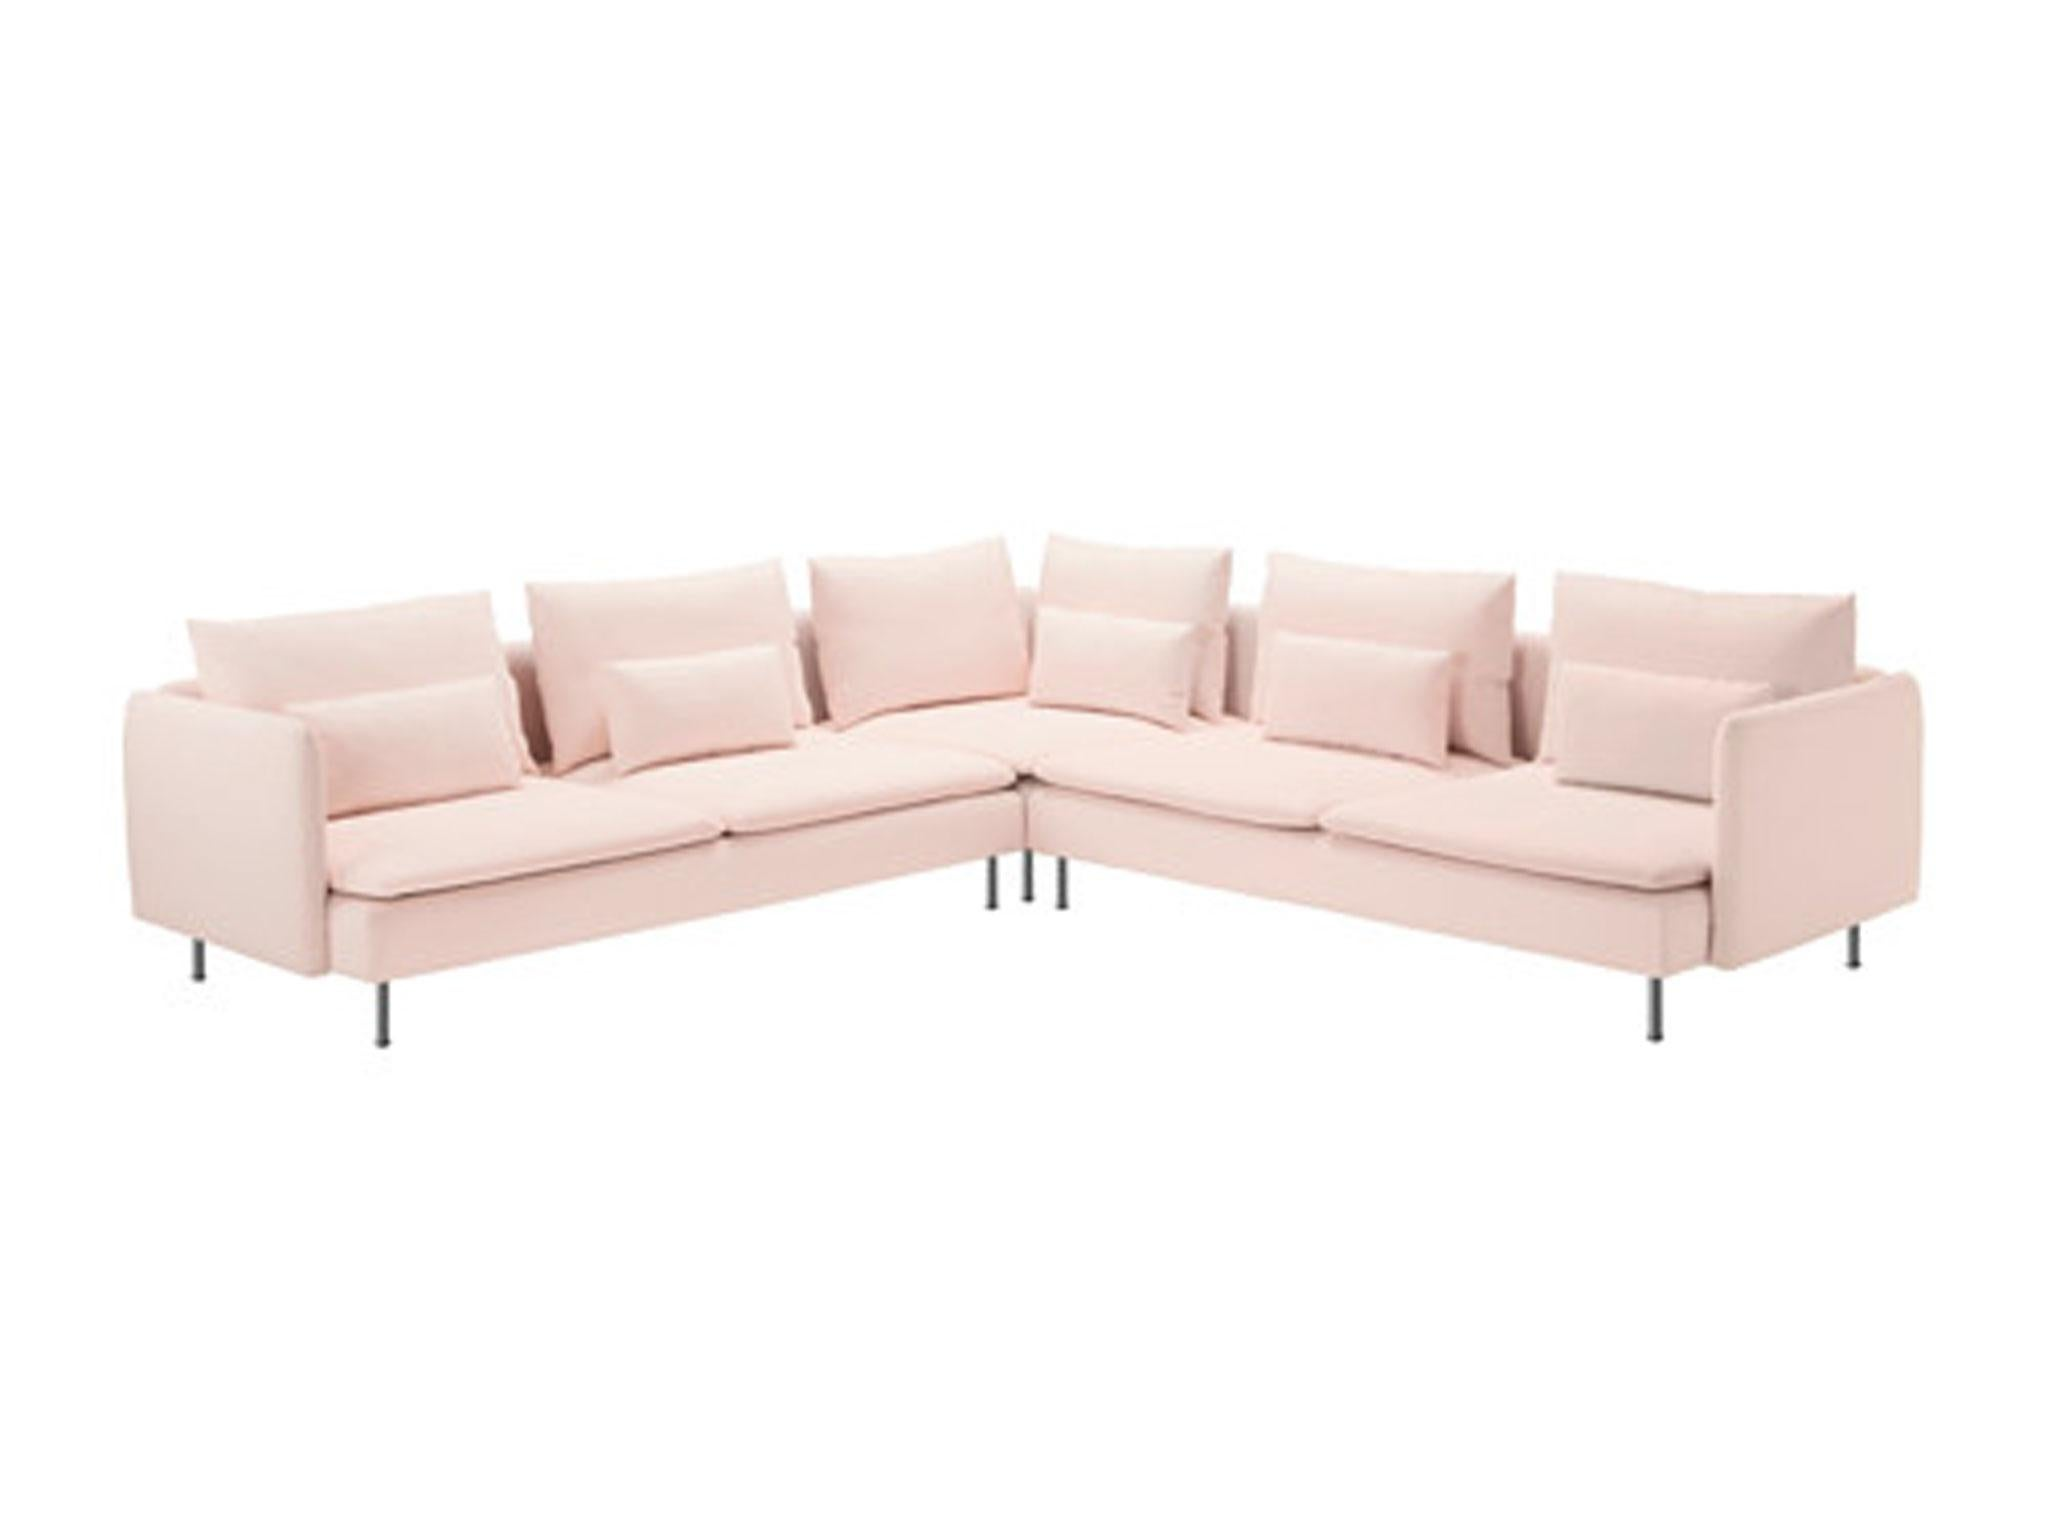 Another sofa solution thats made up in sections this practical design from ikea is kept affordable with microfibre upholstery that comes in a choice of